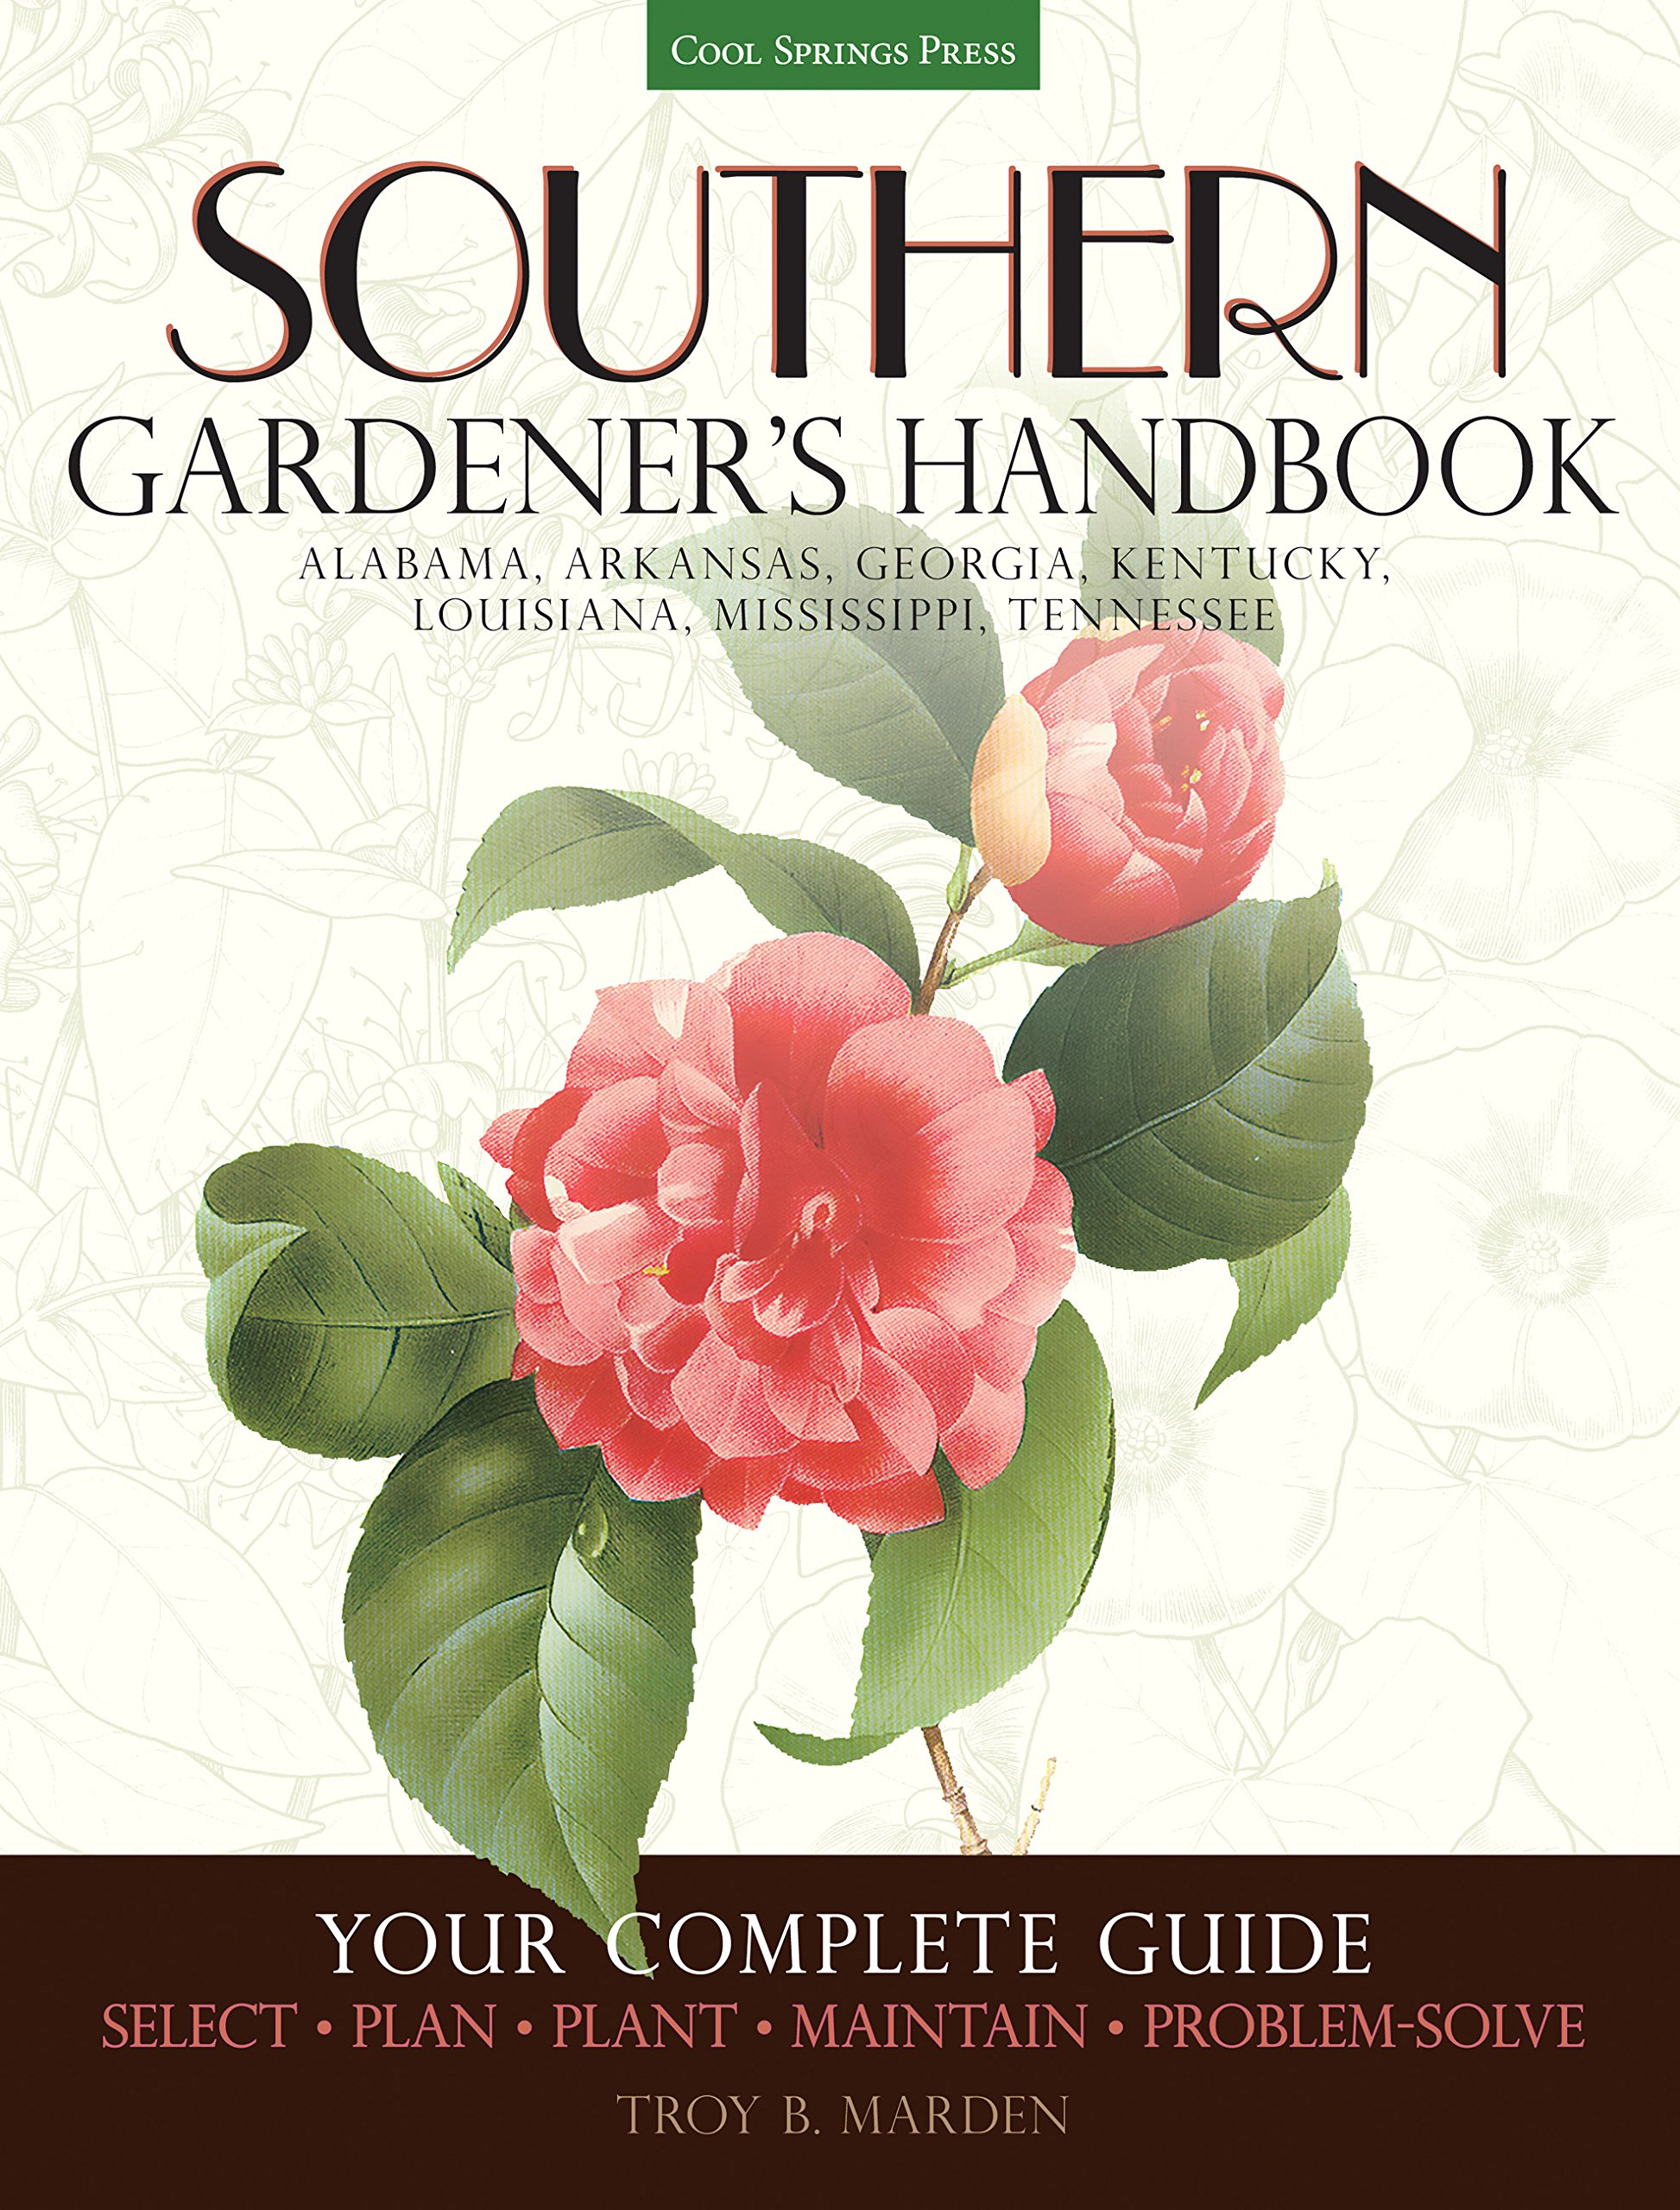 Southern Gardener's Handbook: Your Complete Guide: Select, Plan, Plant, Maintain, Problem-Solve - Alabama, Arkansas, Georgia, Kentucky, Louisiana, Mississippi, Tennessee